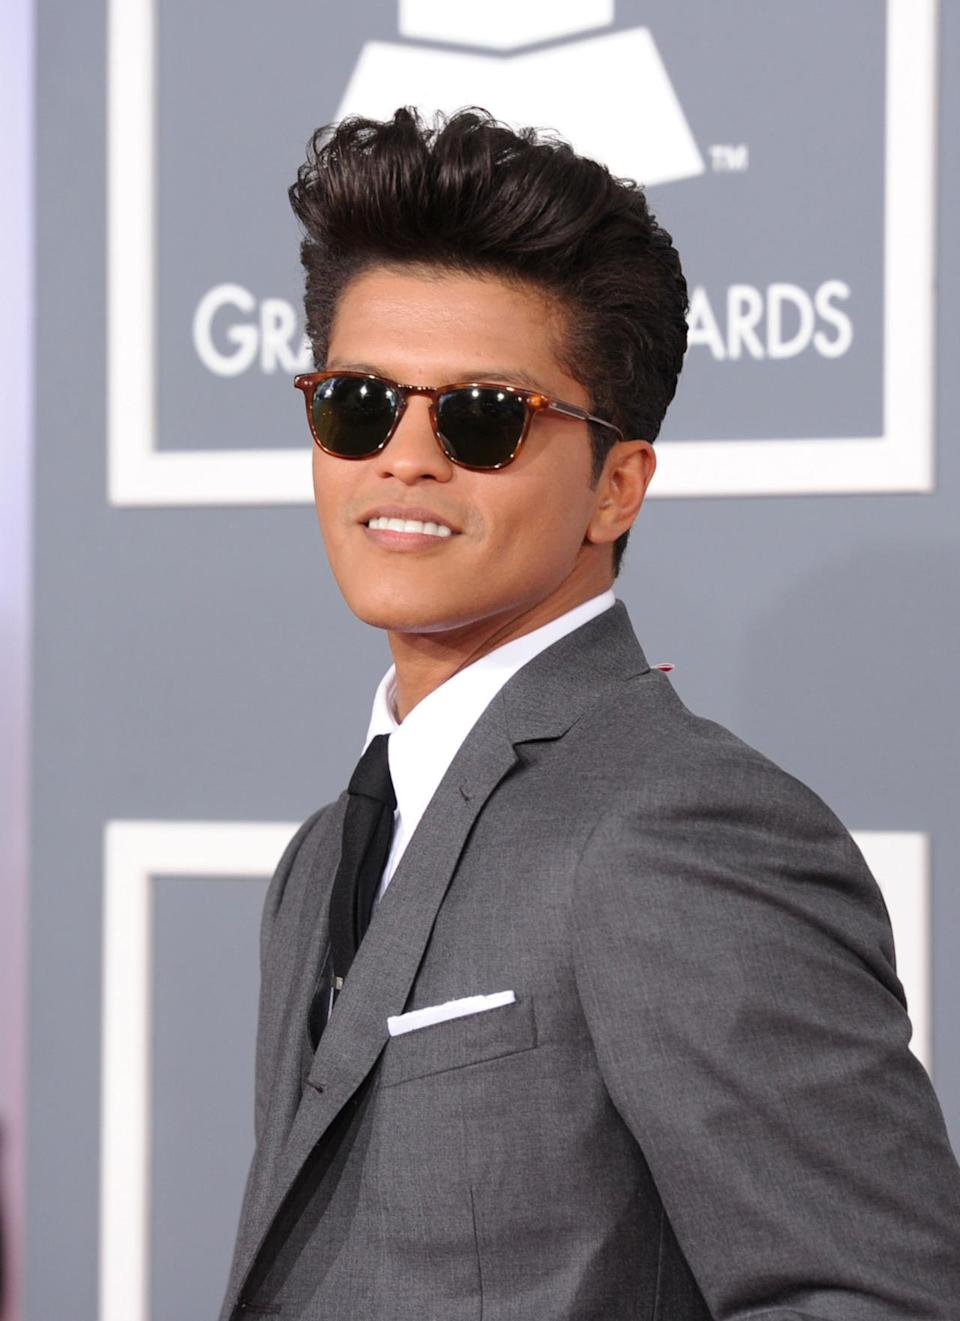 <p>With his pompadour, gleaming smile, and sunglasses, Bruno Mars is always iconic on the red carpet and stage — even before he starts dancing and singing.<i> (Photo: Getty Images)</i></p>